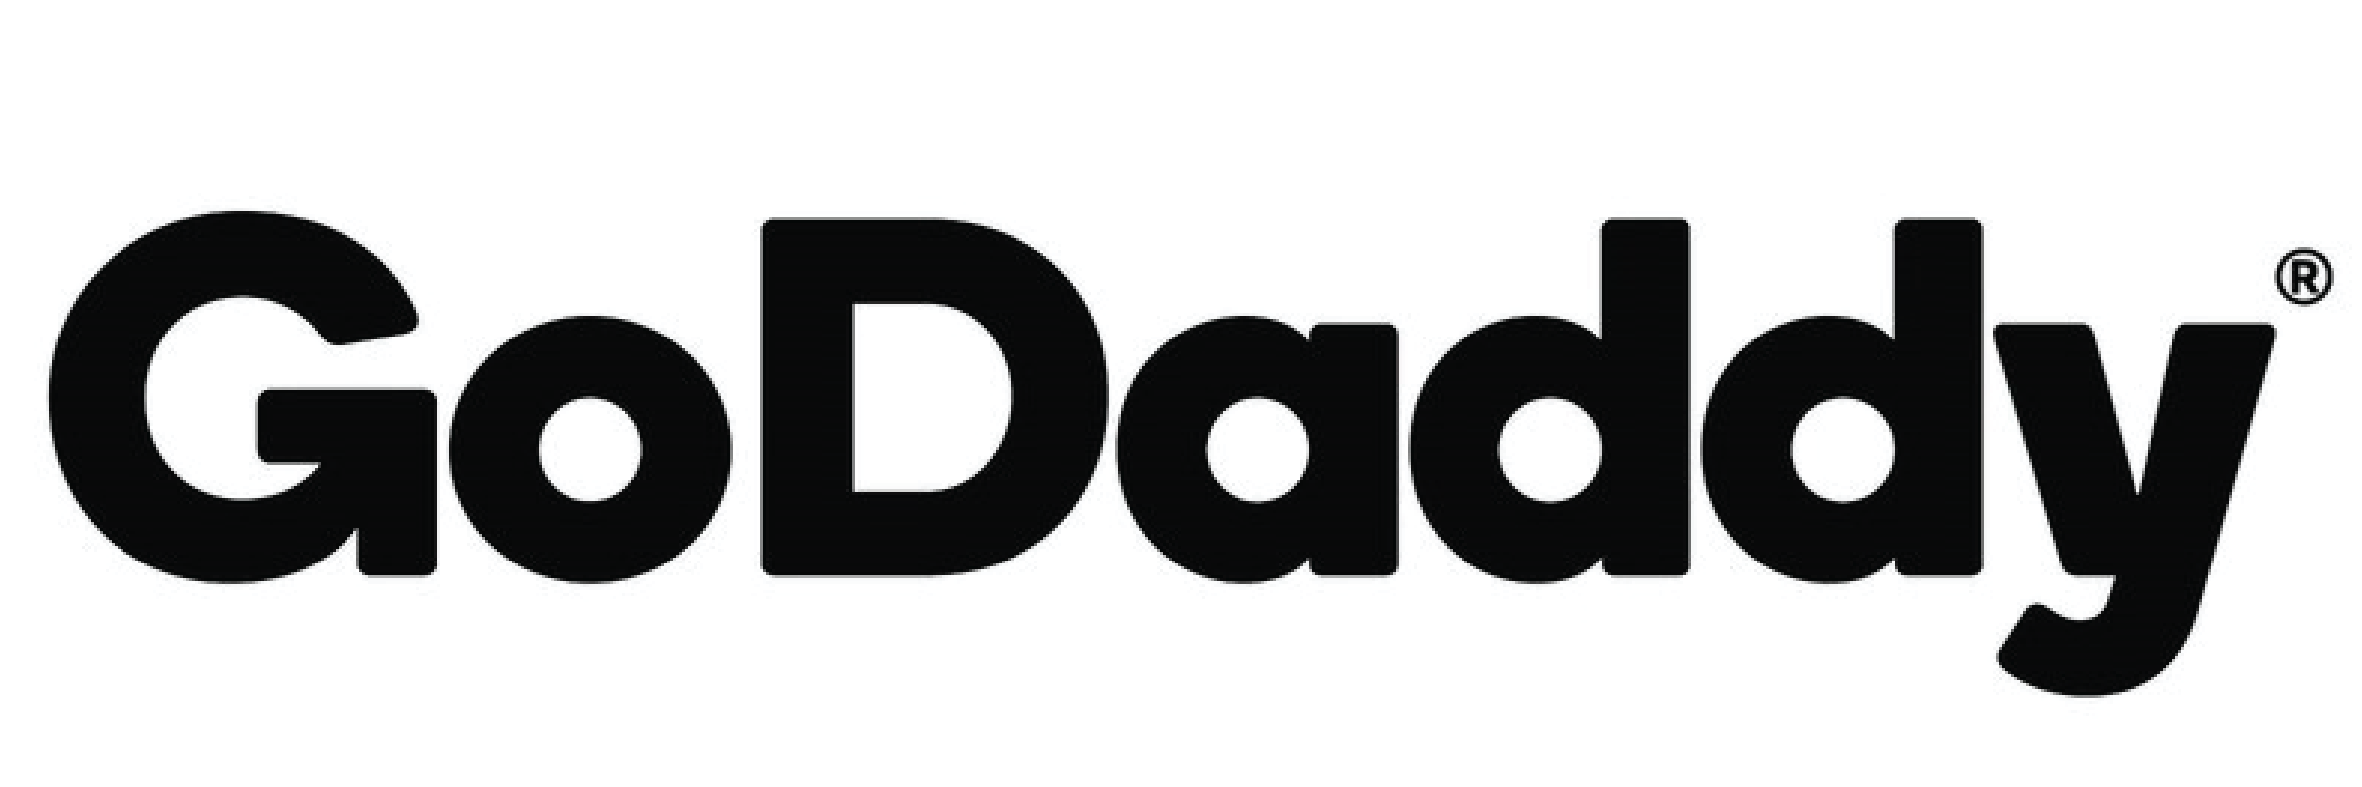 GoDaddy-Blog-e1559708825532.png